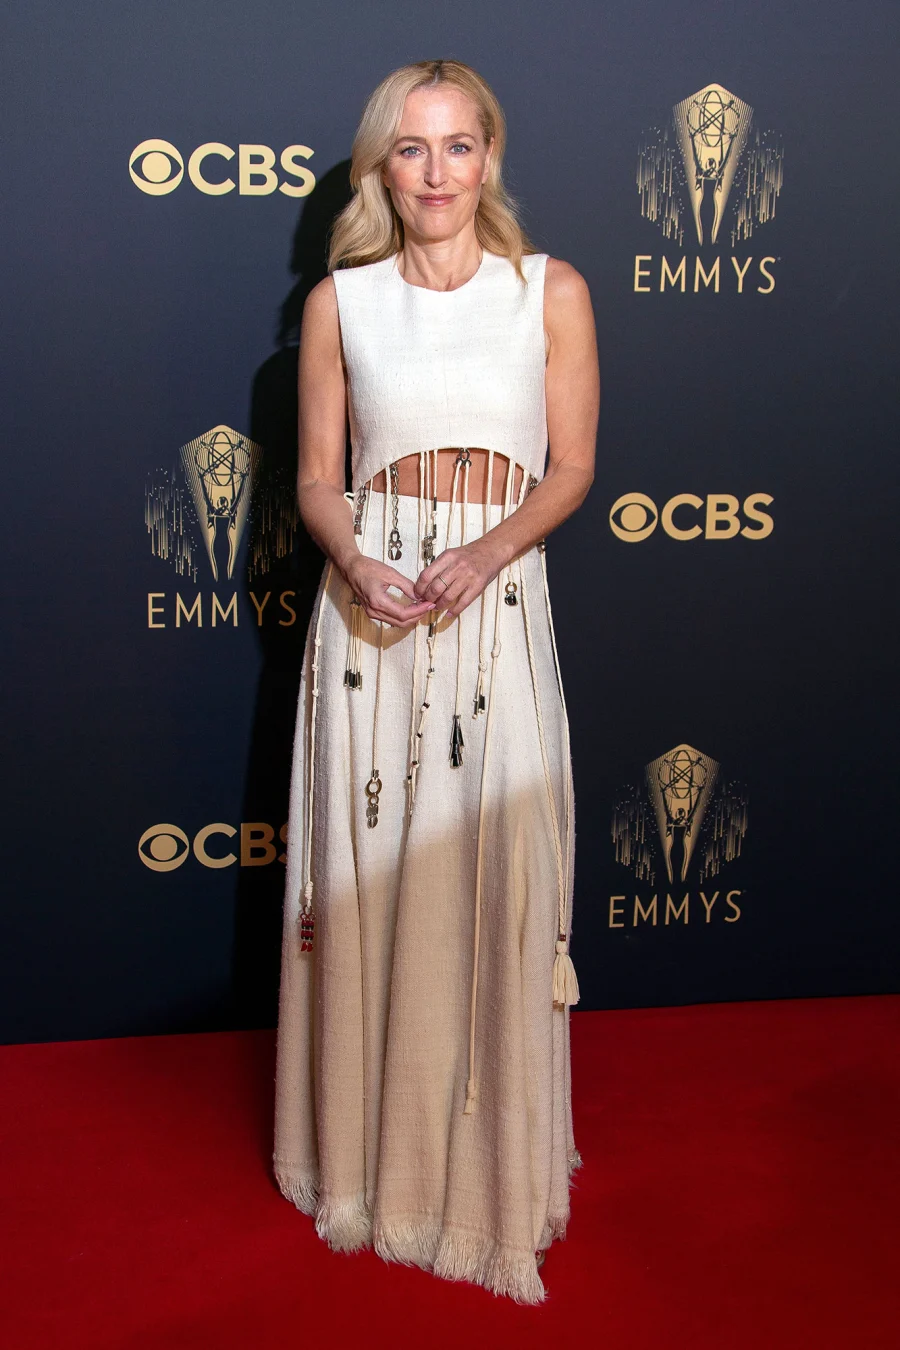 Gillian Anderson wearing two piece white cut out dress on Emmys red carpet